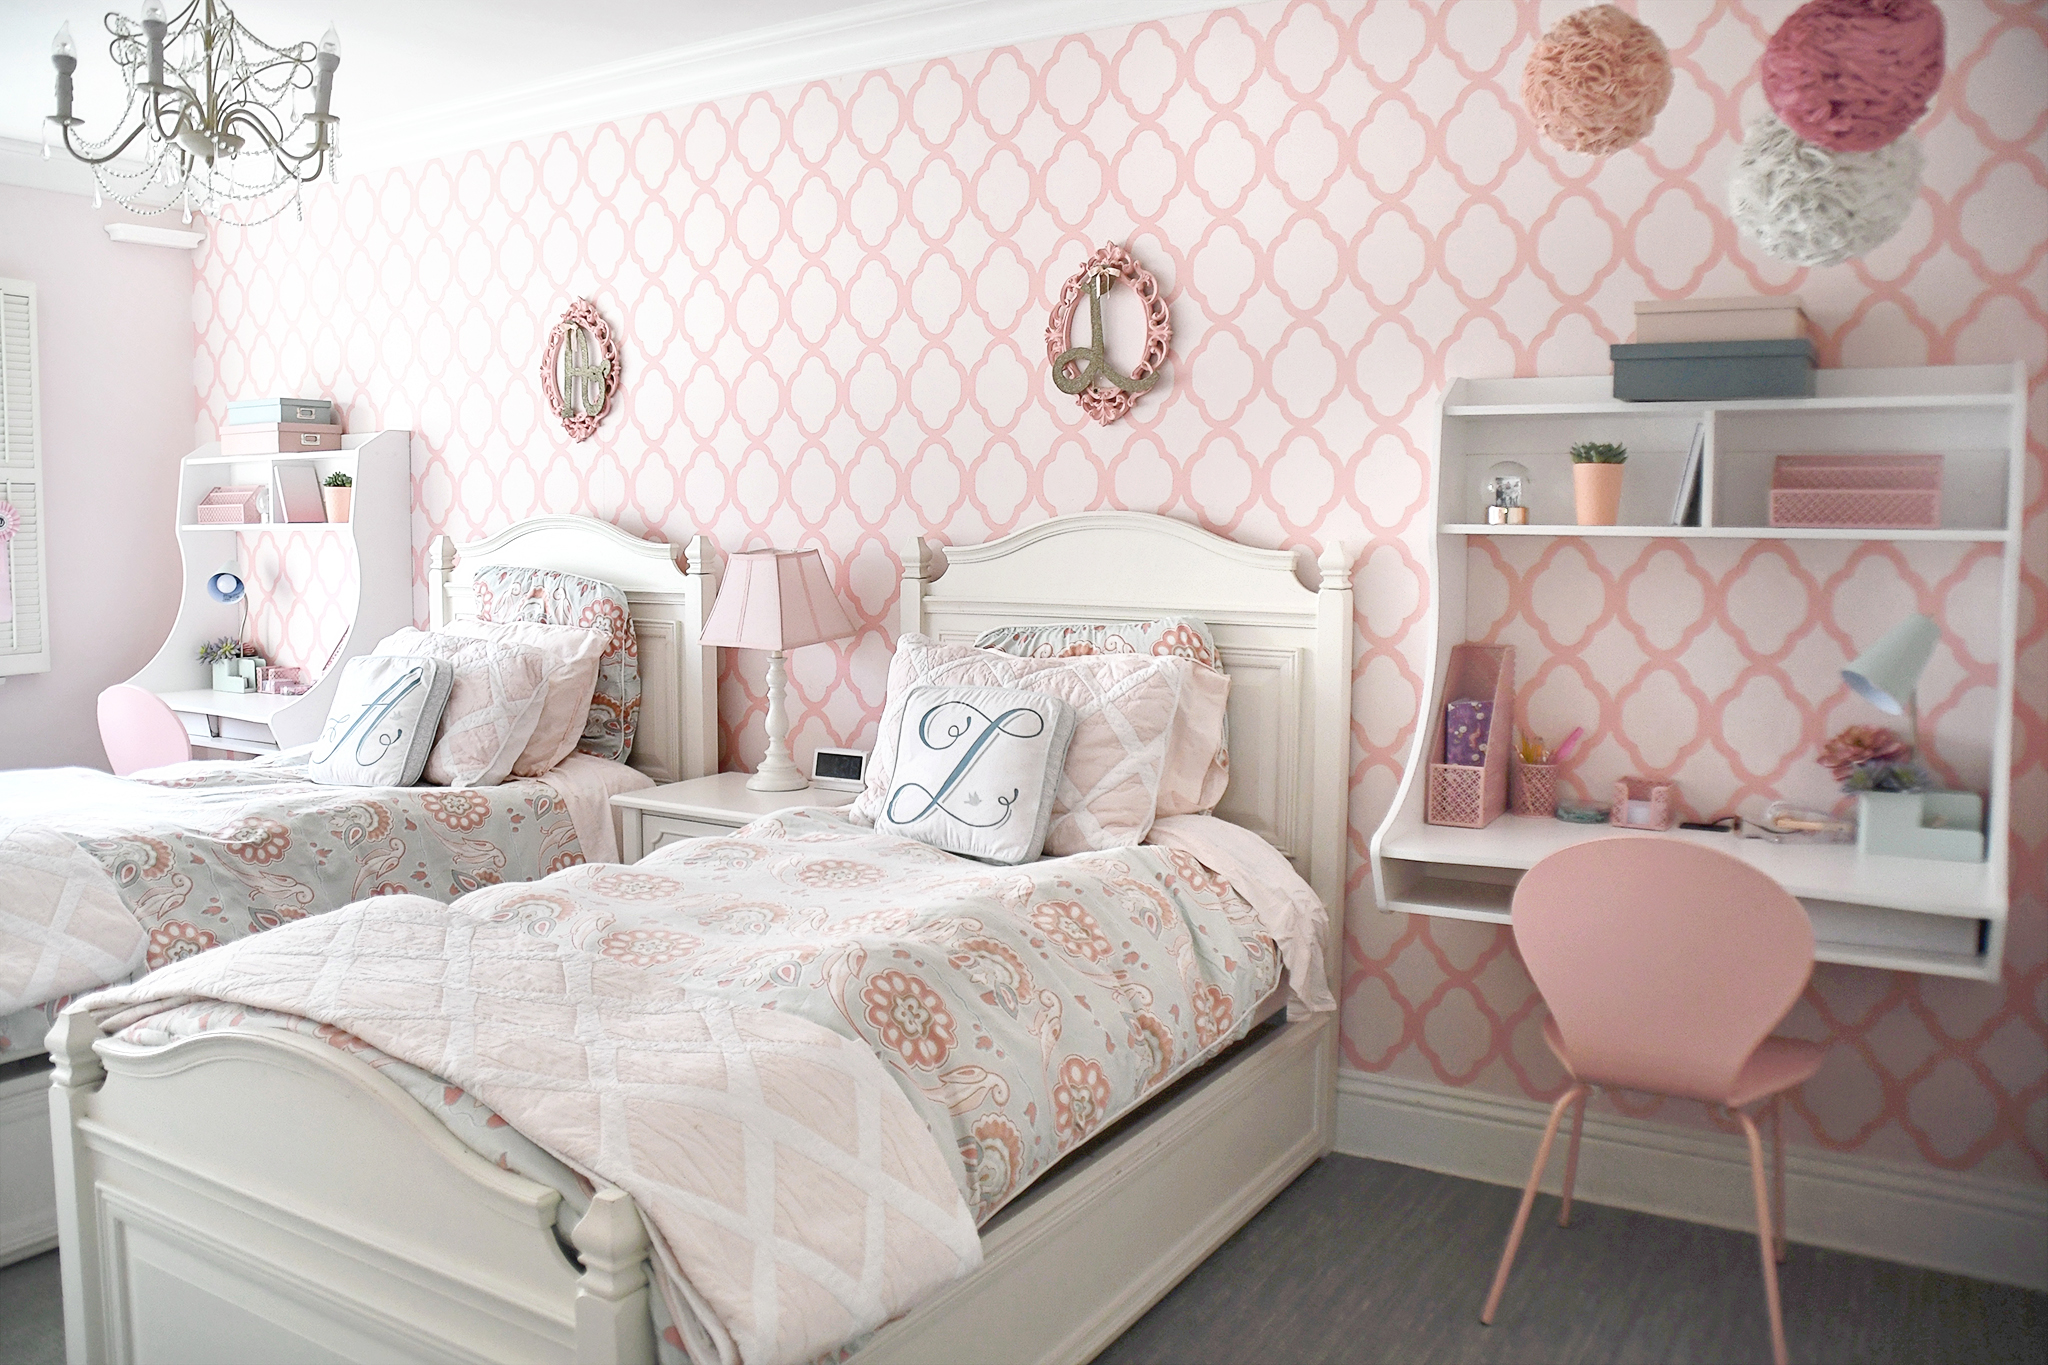 Shared Girls Room and Space Saving Ideas